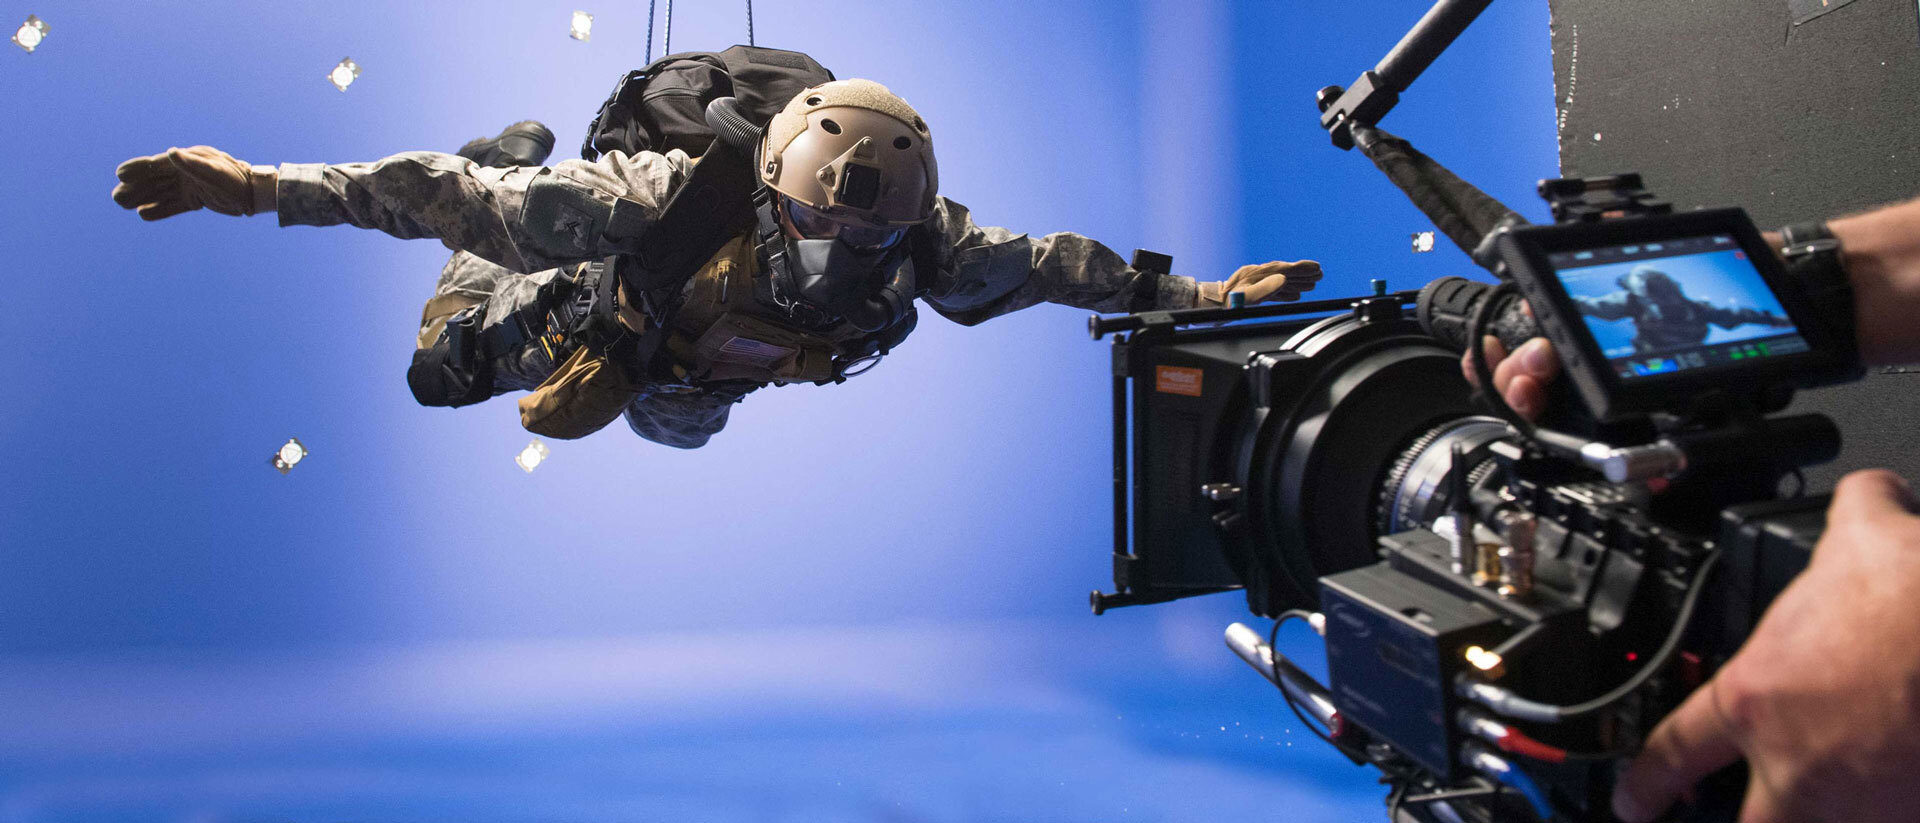 Blue screen compositing with wire removal skydive soldier compositing